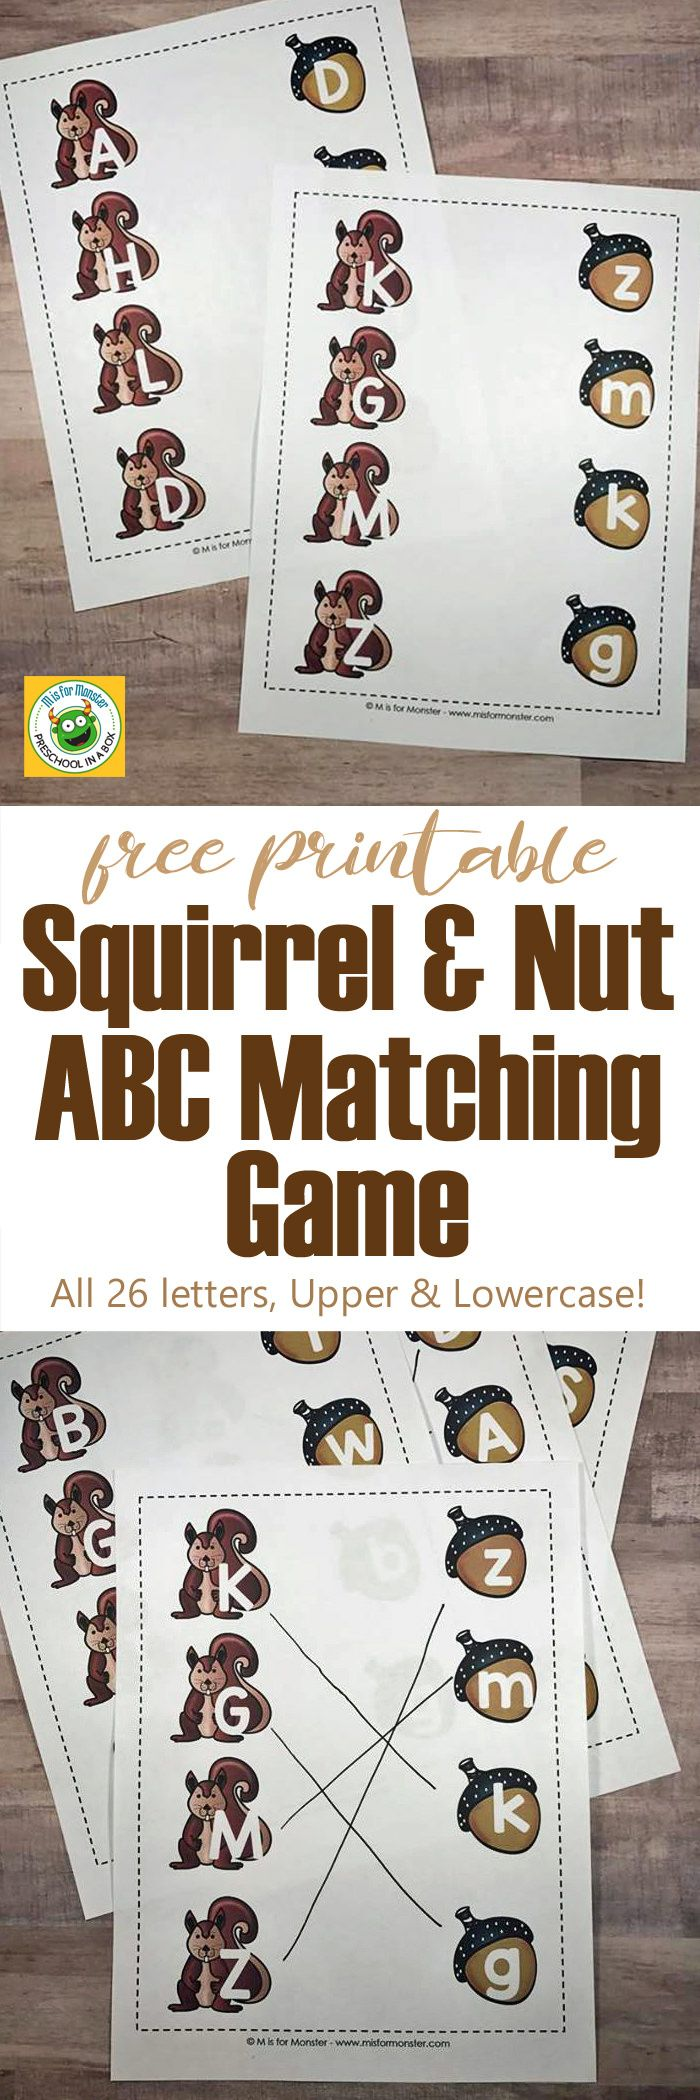 Squirrel And Nut Abc Matching Game Free Printables  Matching Games